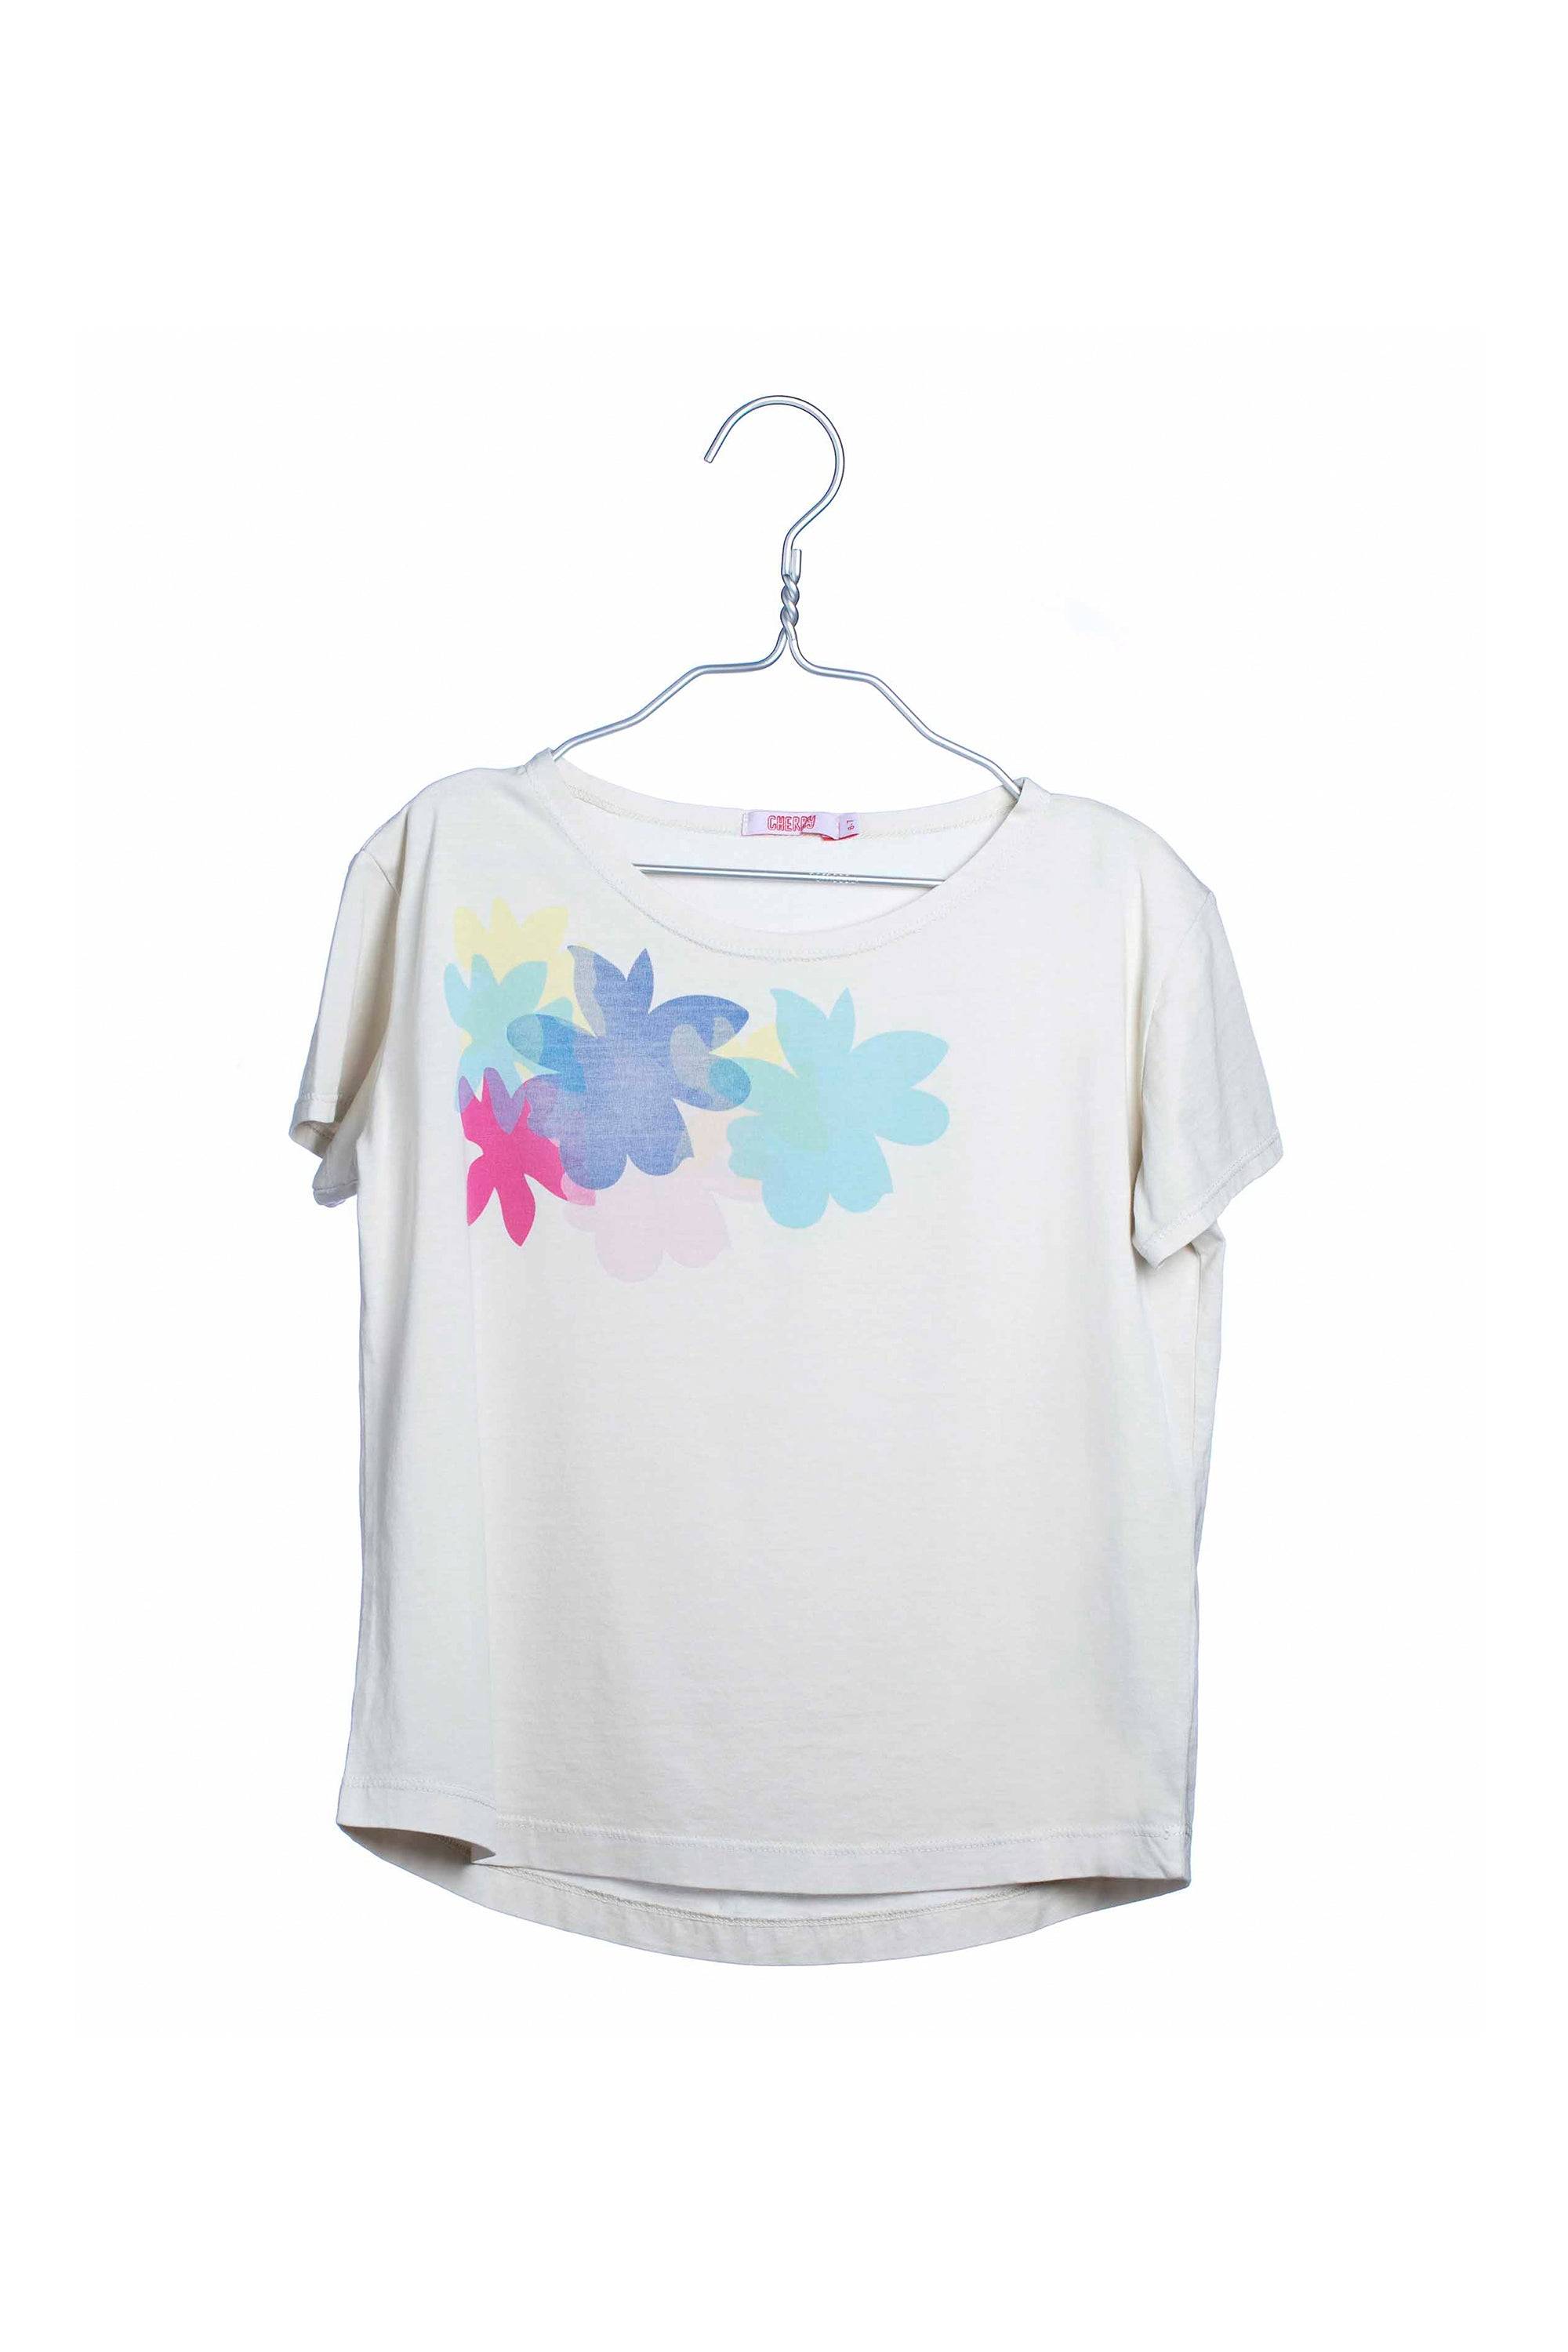 1708 Colorful Flowers Tee